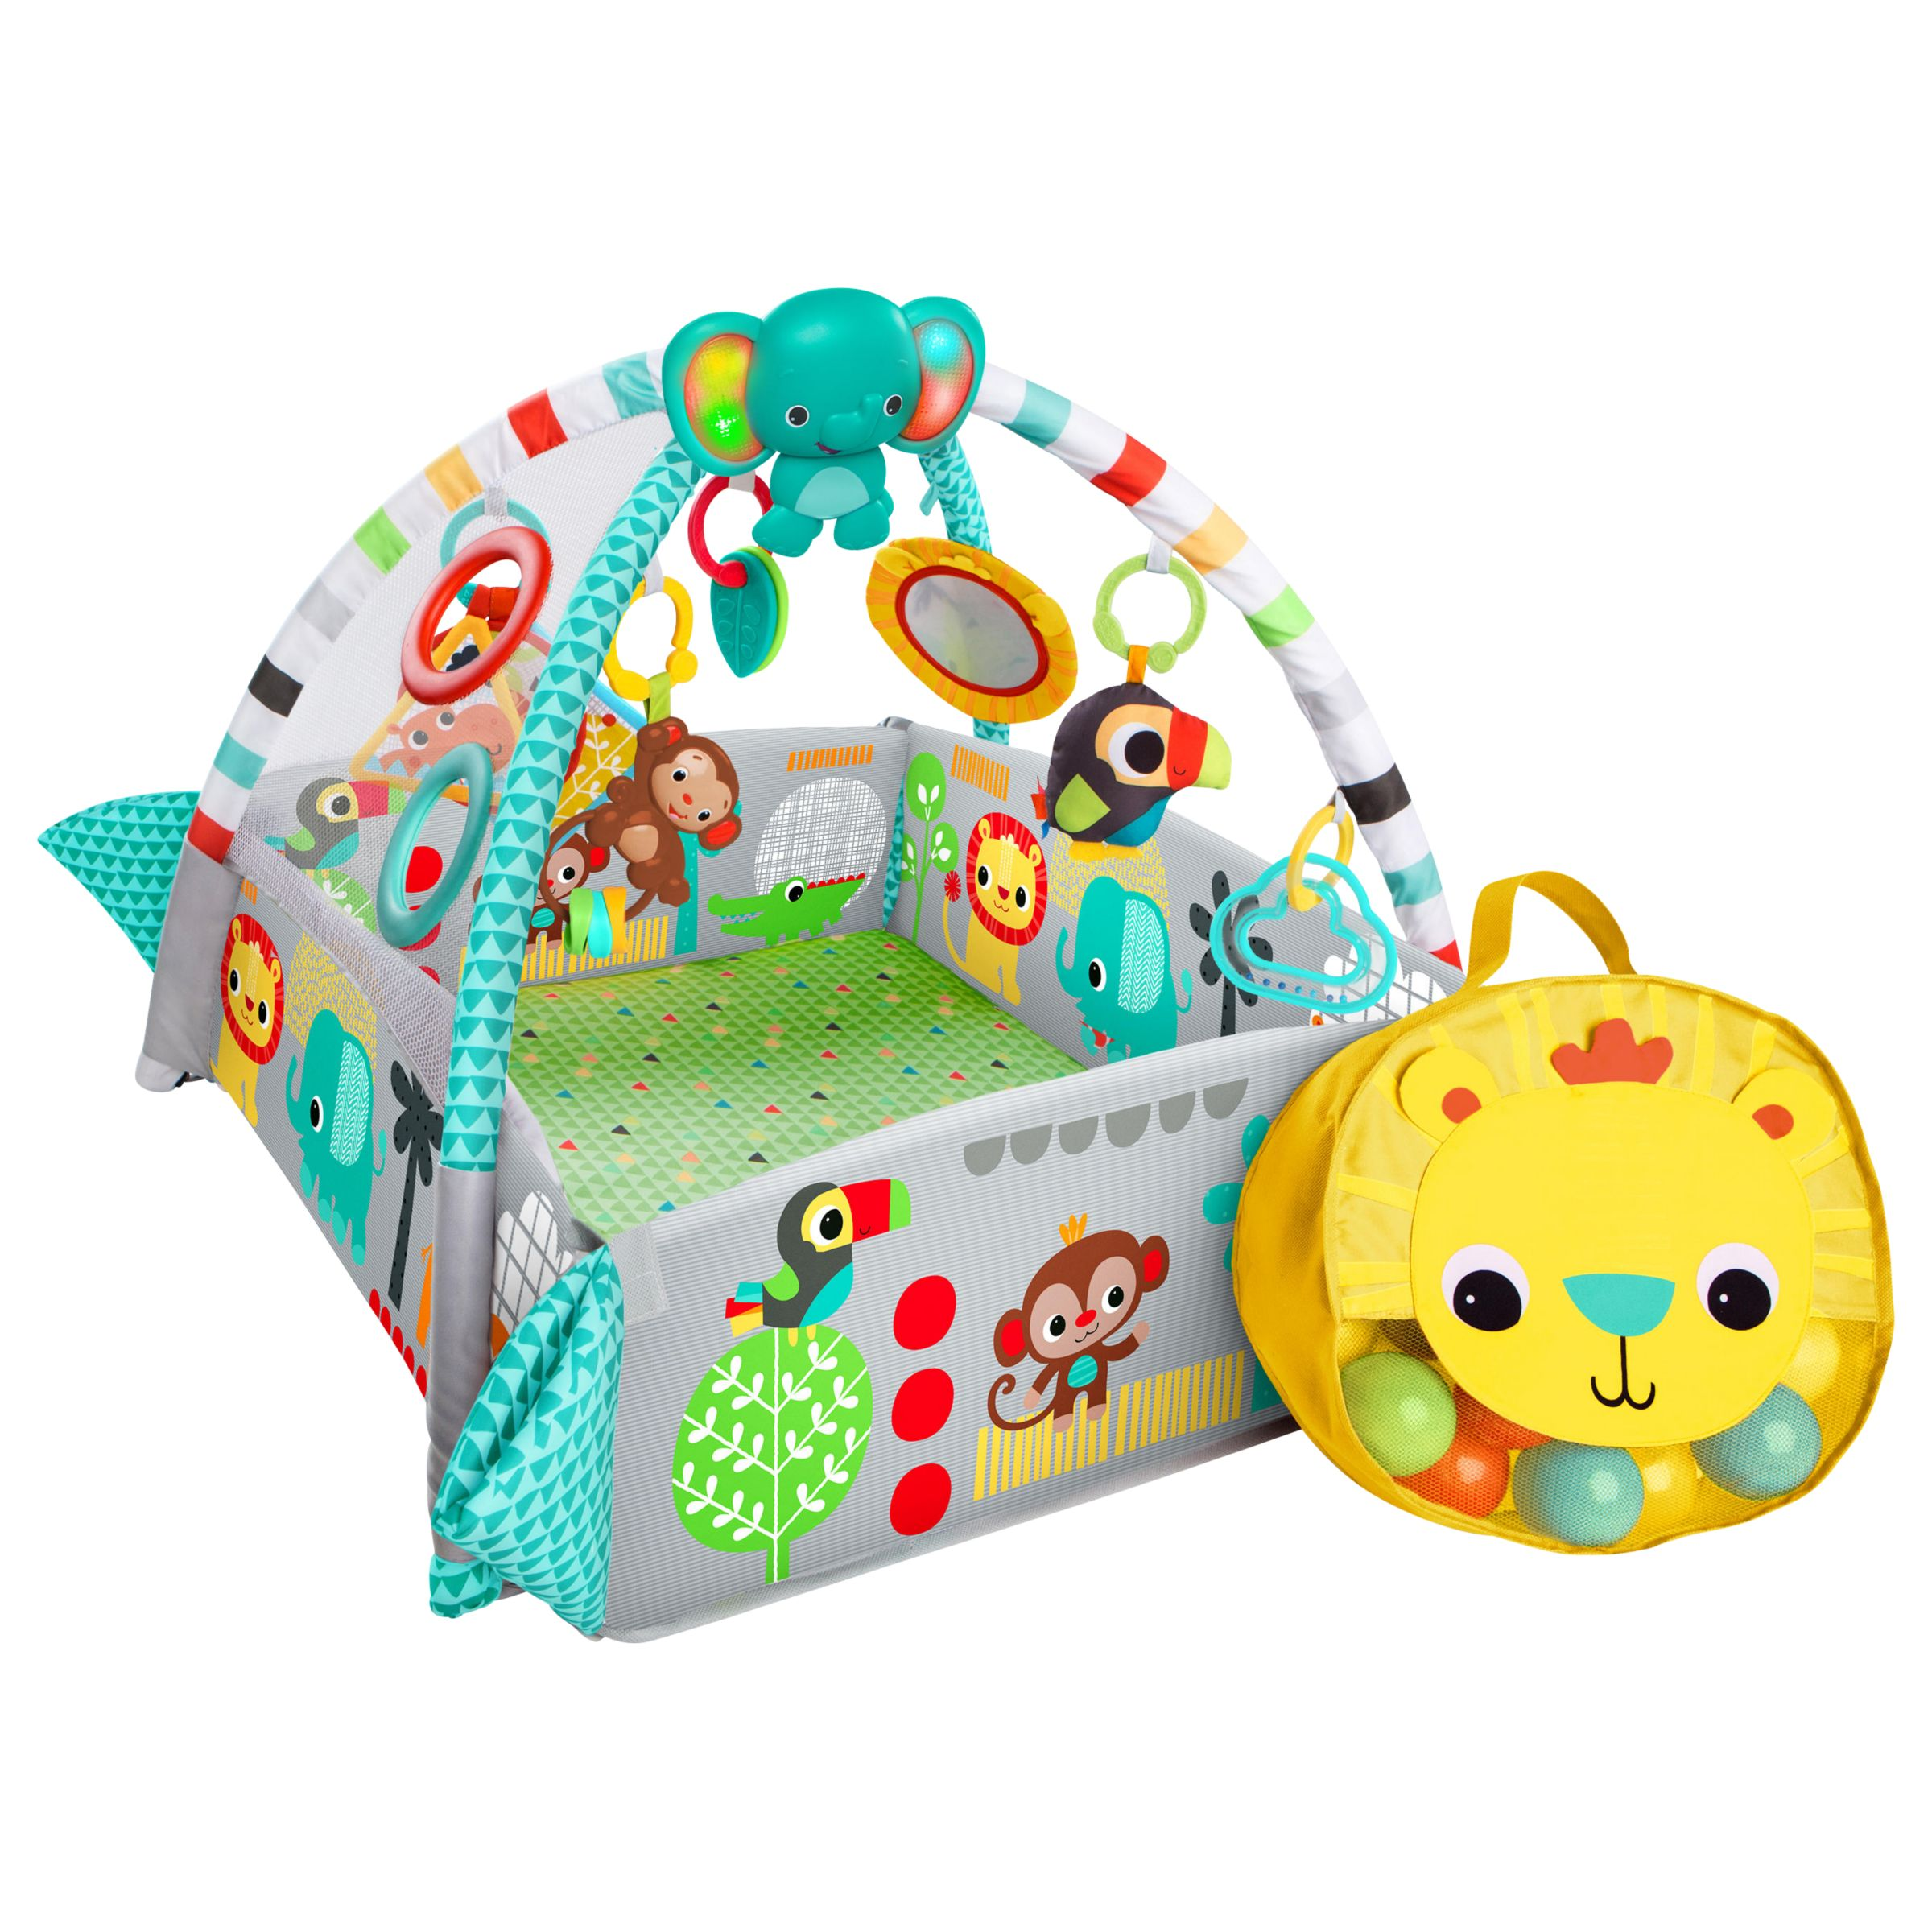 Bright Starts Bright Starts 5 in 1 Ball Activity Play Gym